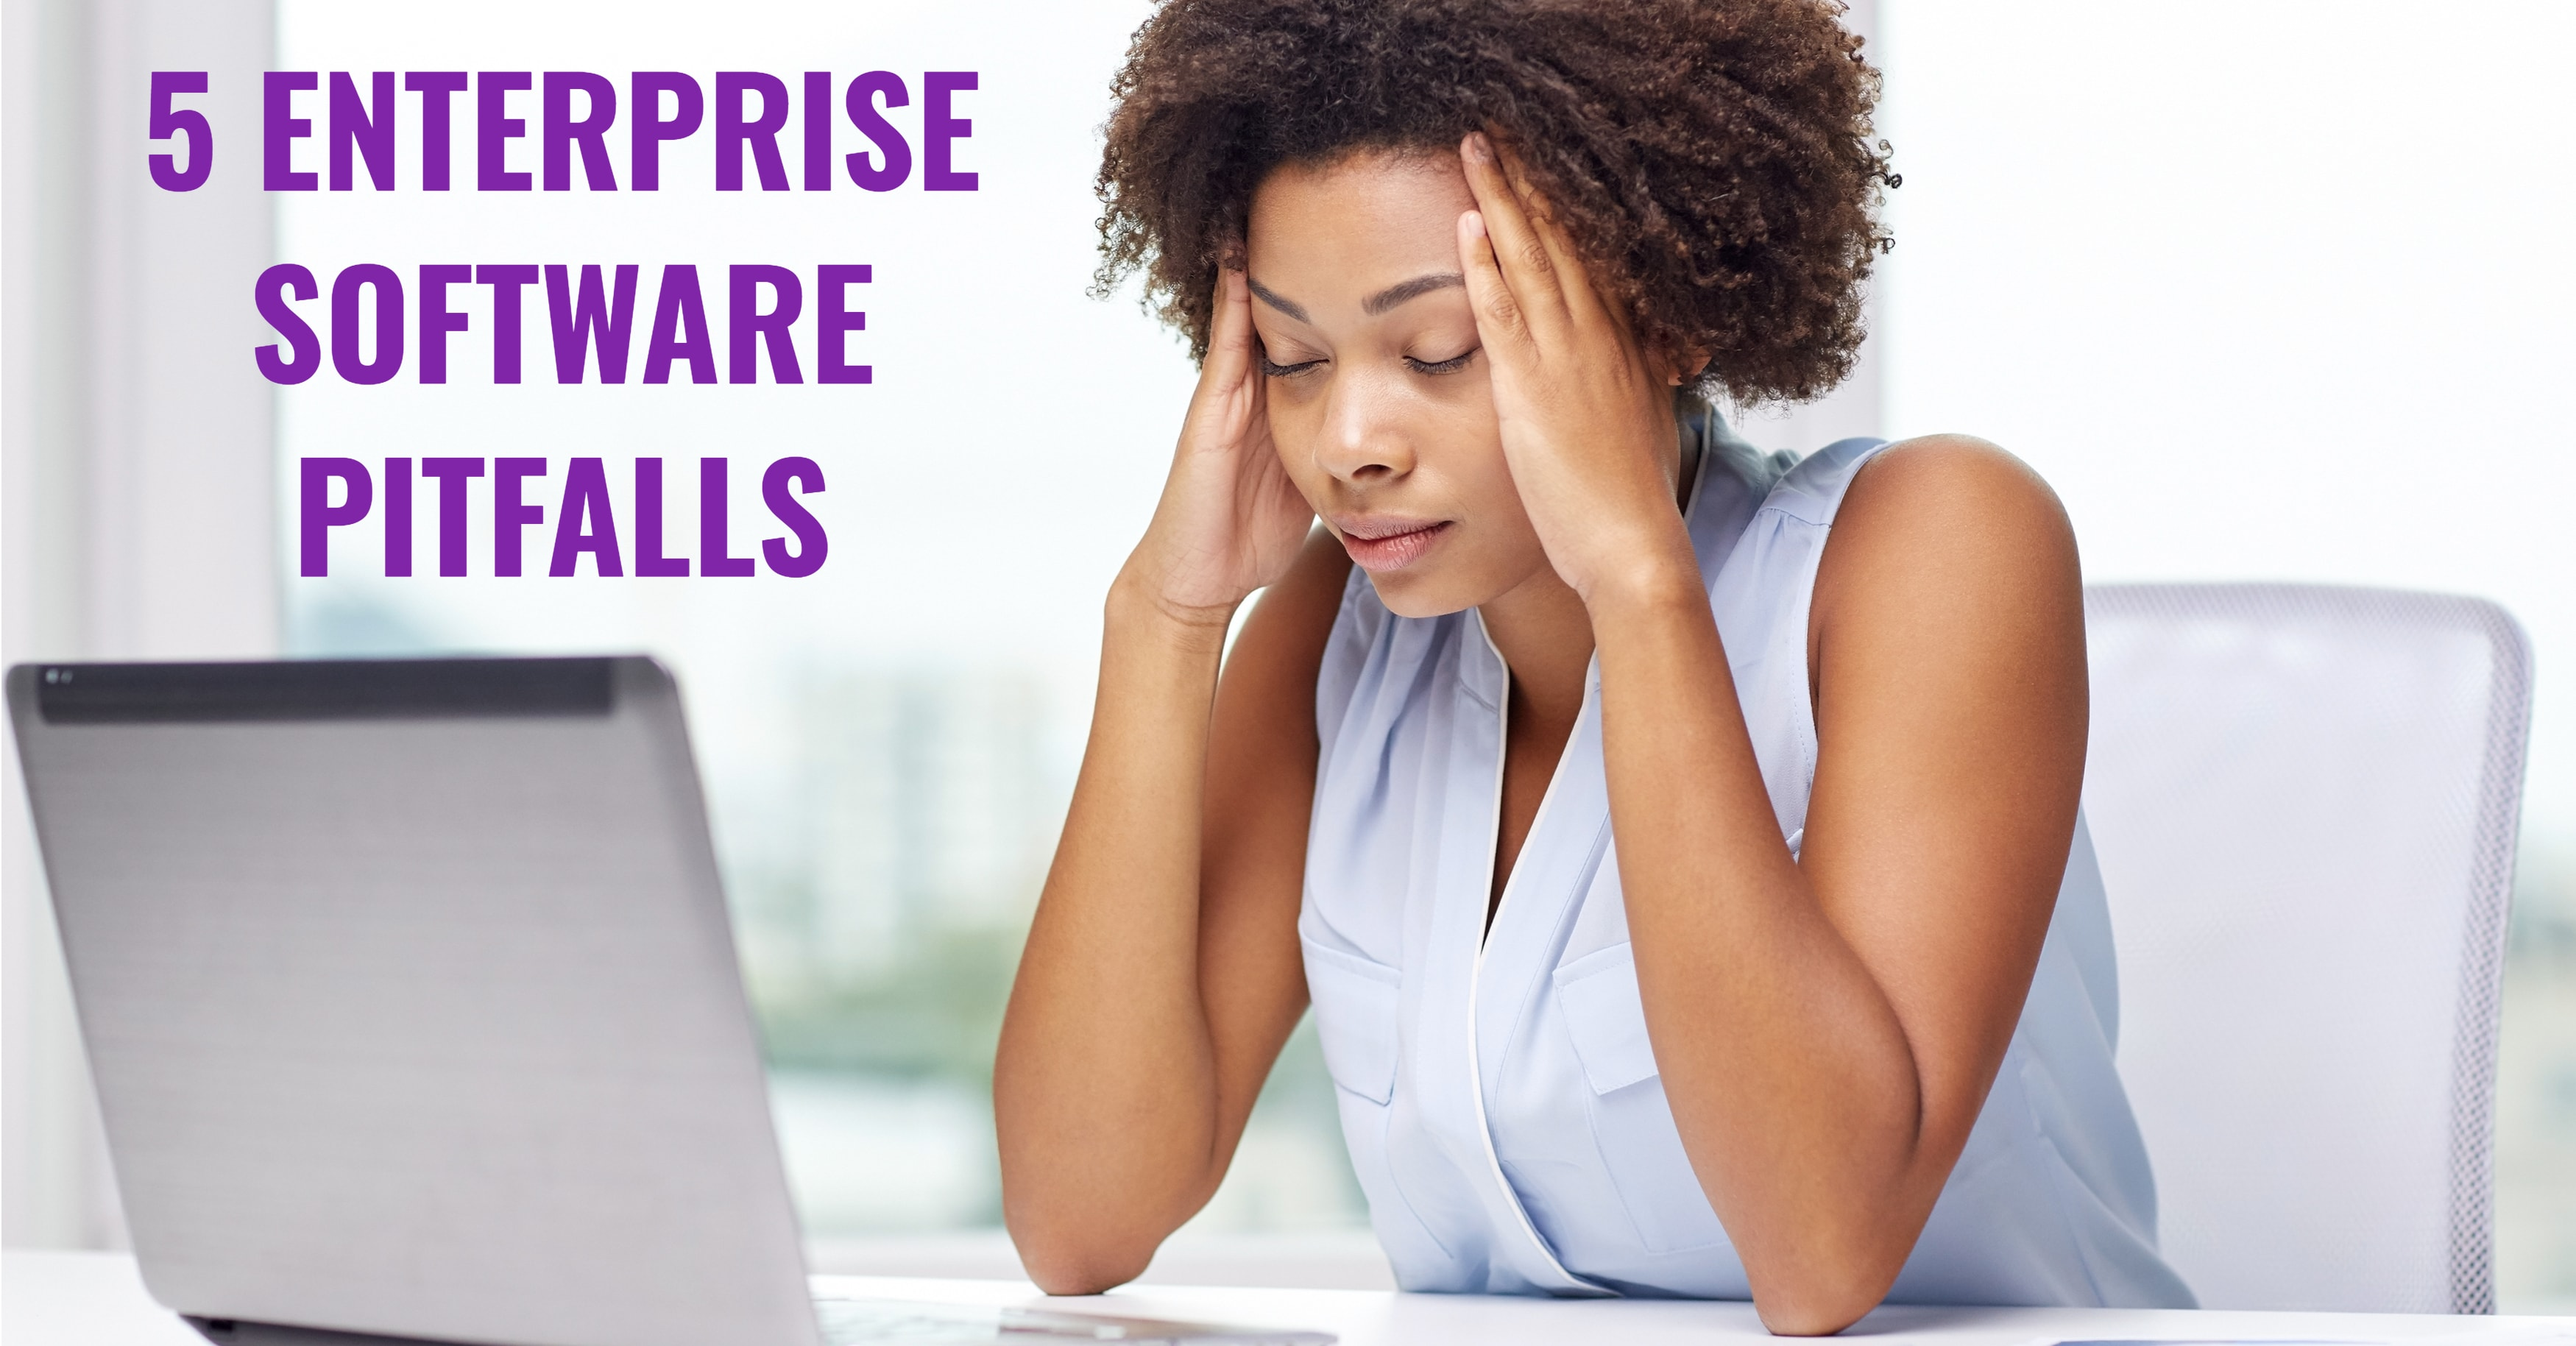 Enterprise Software Pitfalls